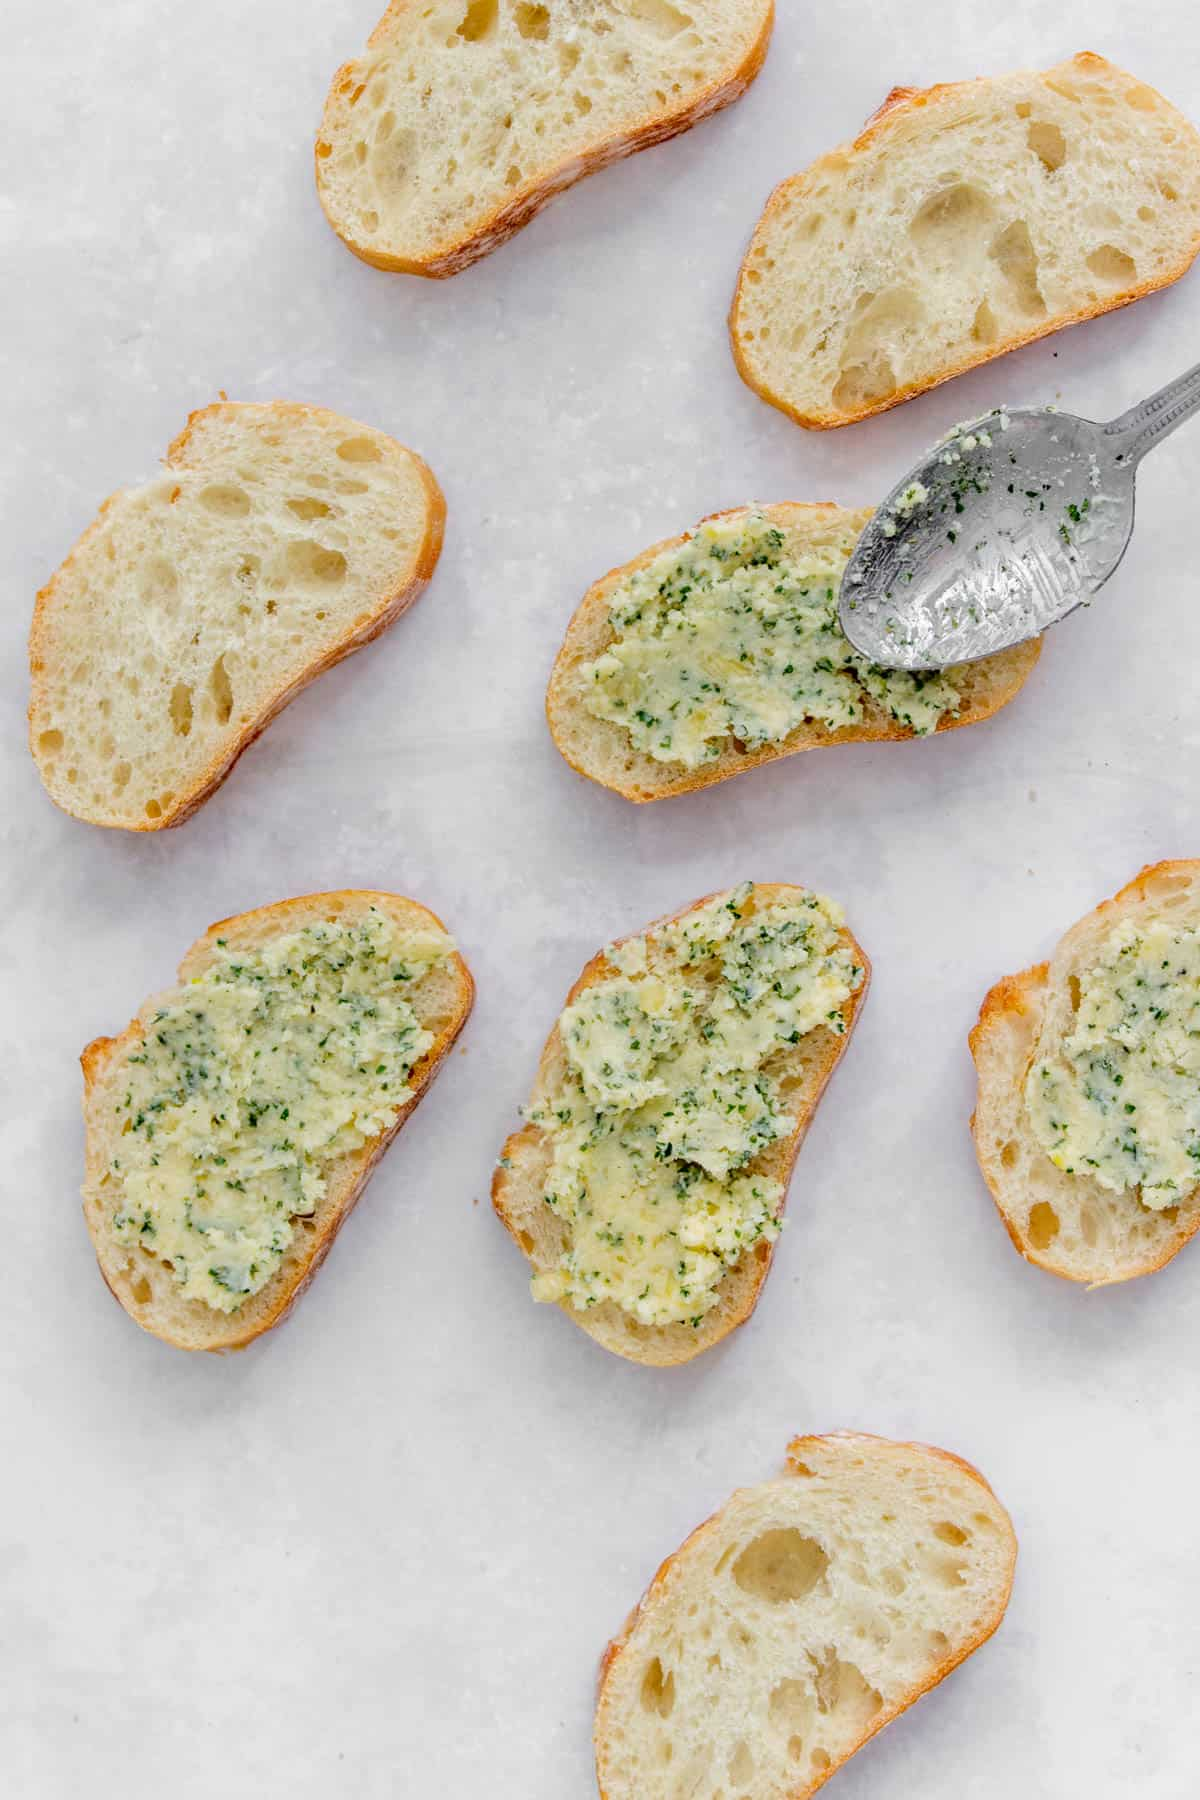 Baguette with garlic butter spread on.